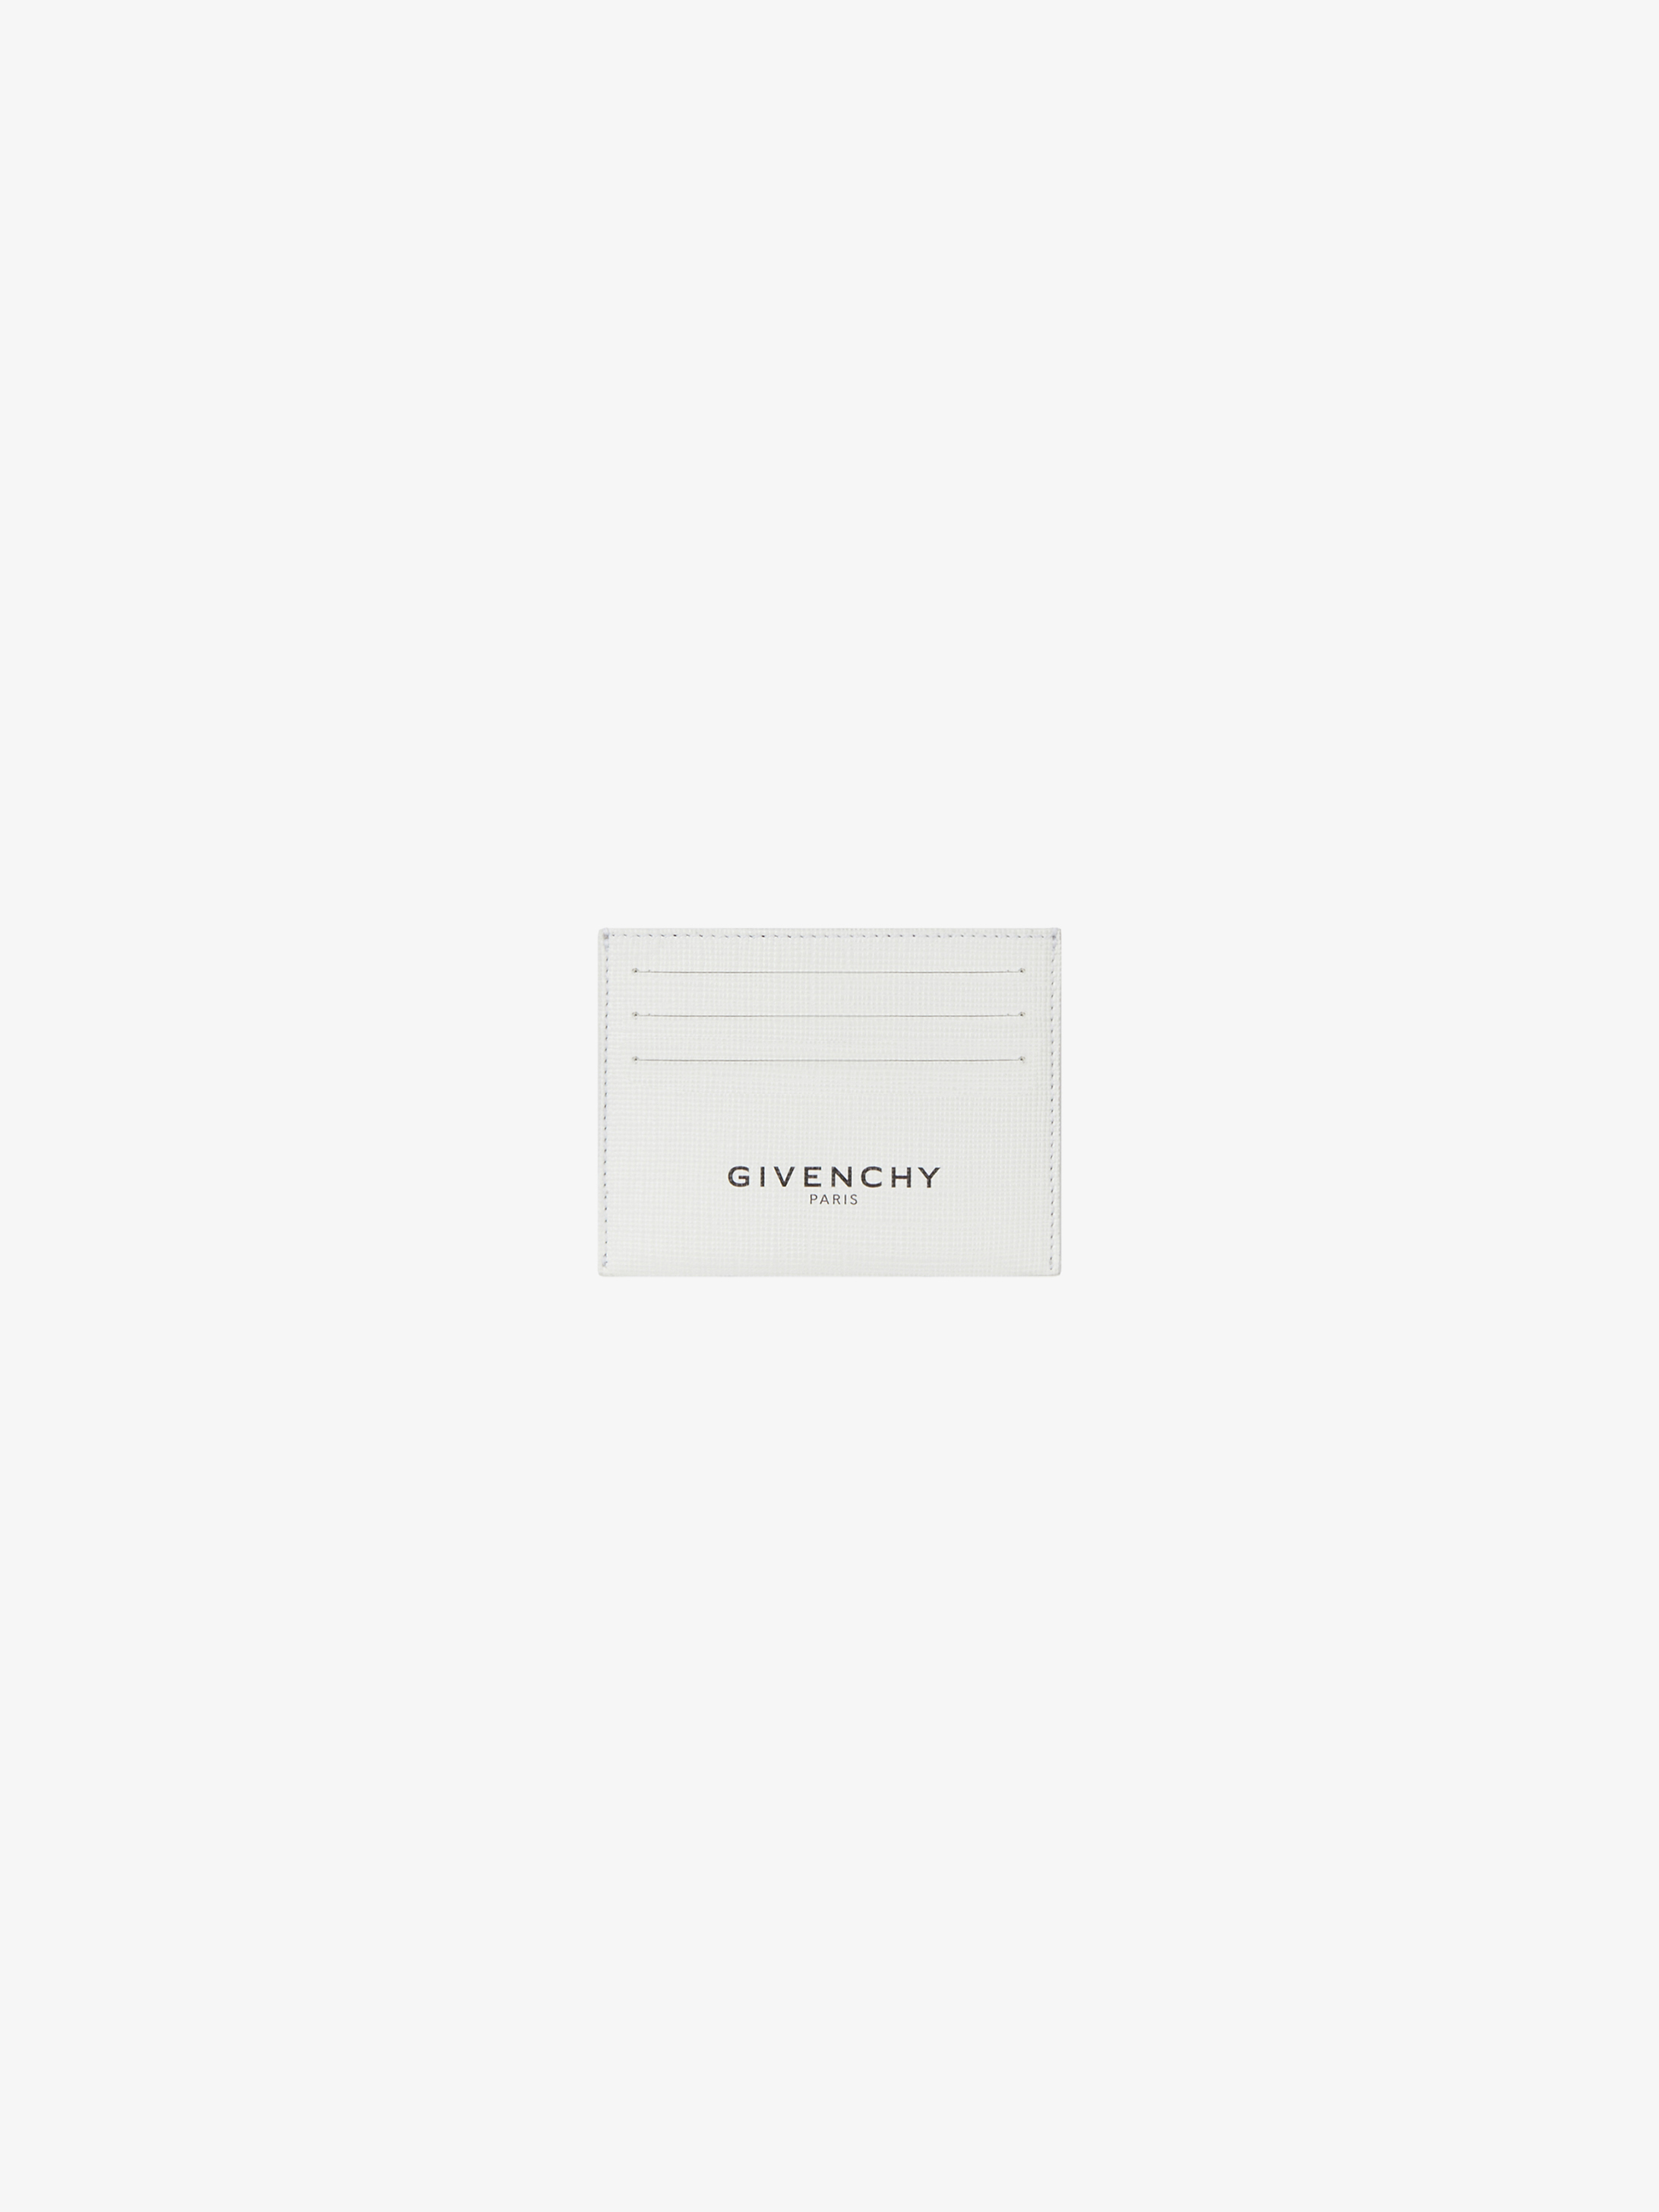 GIVENCHY PARIS glow in the dark card holder